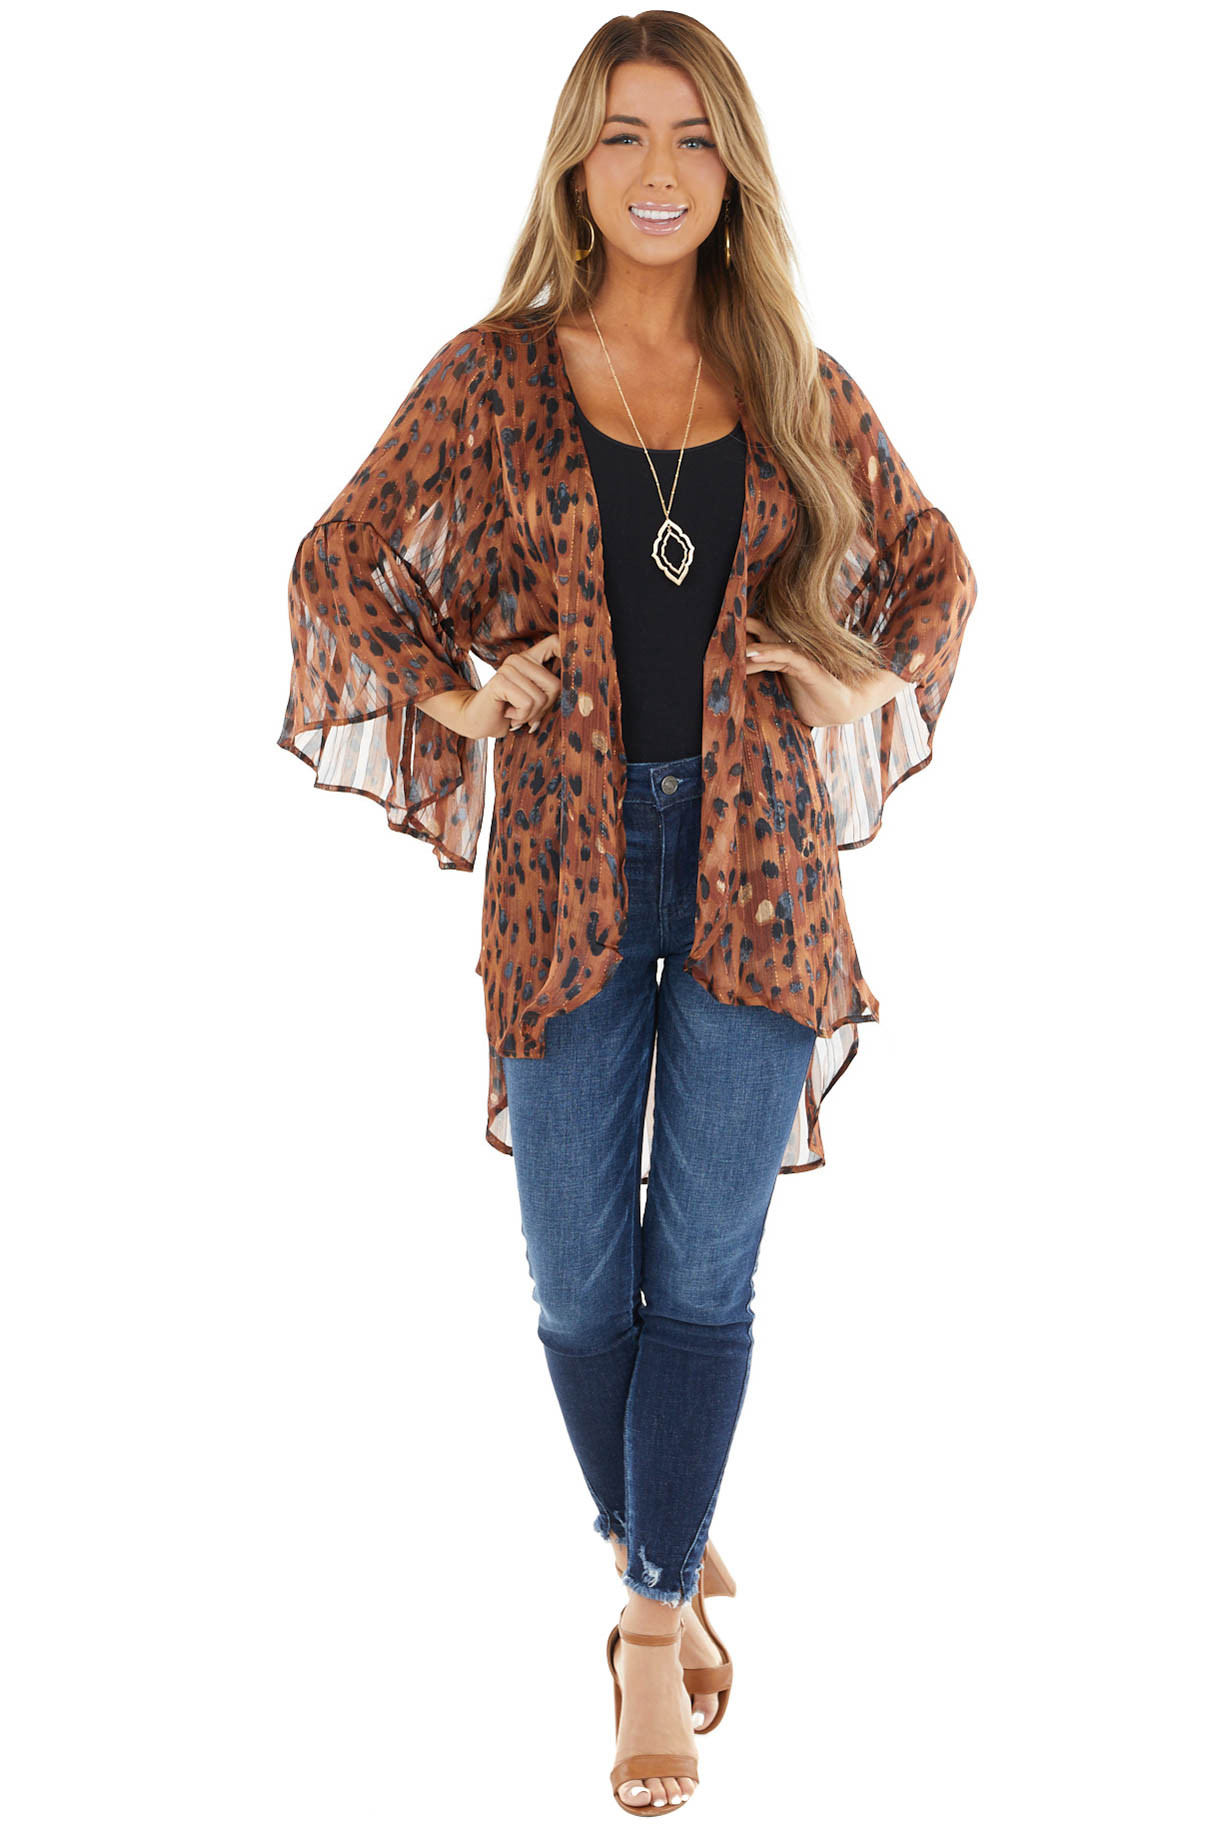 Cognac Leopard Print Kimono Open Front with Bell Sleeves